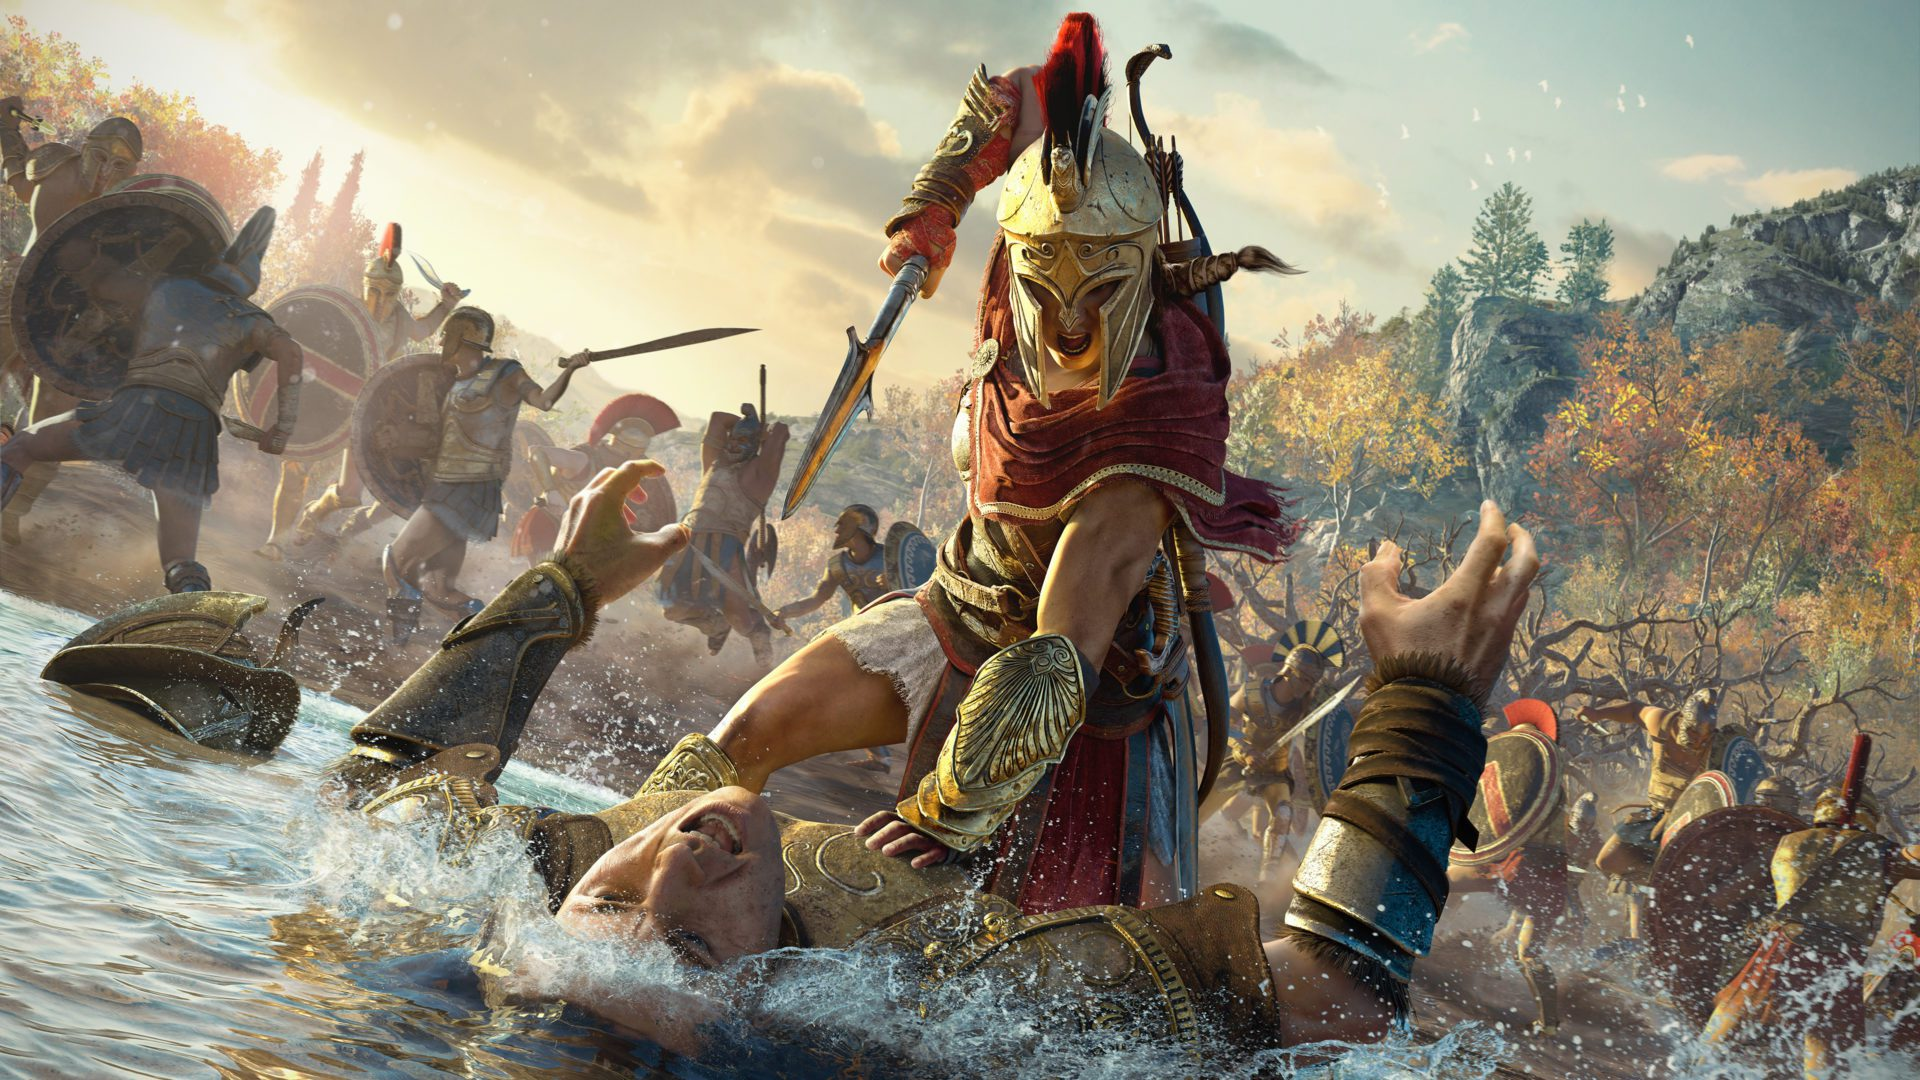 Assassin S Creed 2020 Is Definitely About Vikings According To A